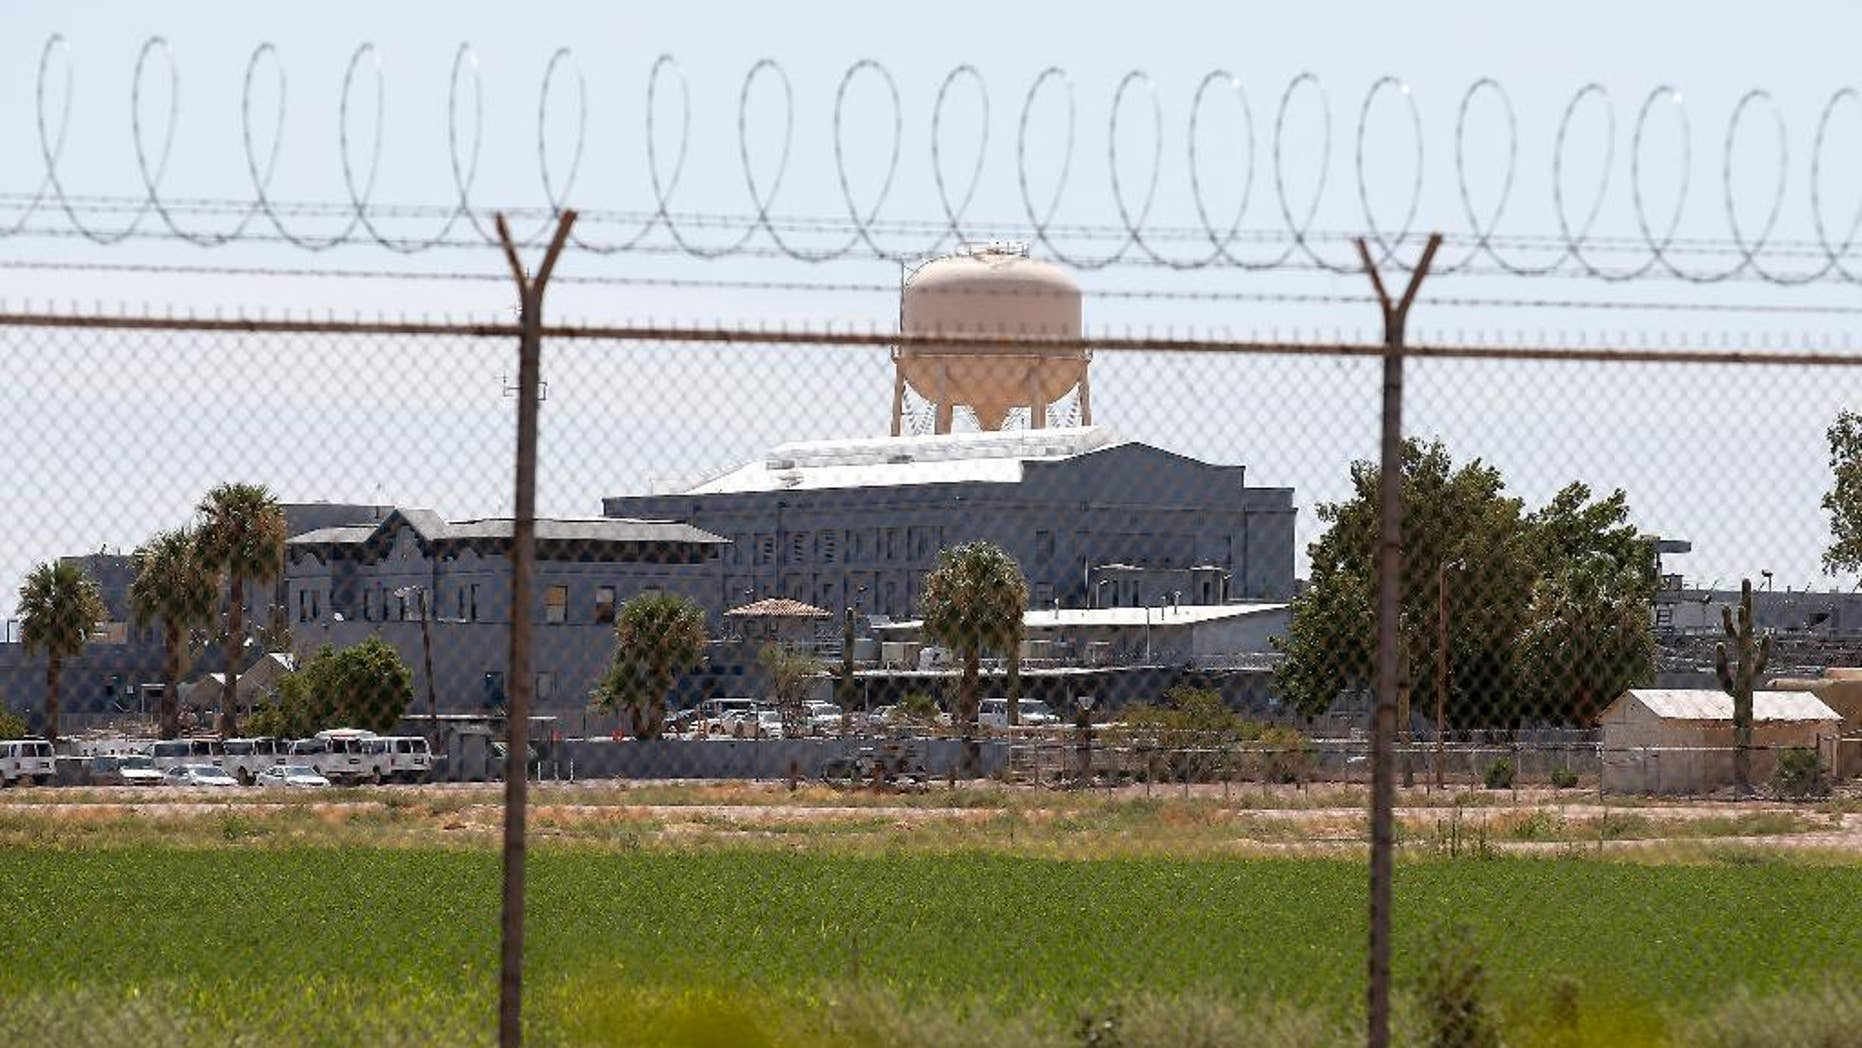 FILE - In this July 23, 2014, file photo, a fence surrounds the state prison in Florence, Ariz., where the execution of Joseph Rudolph Wood took place. (AP Photo/File)